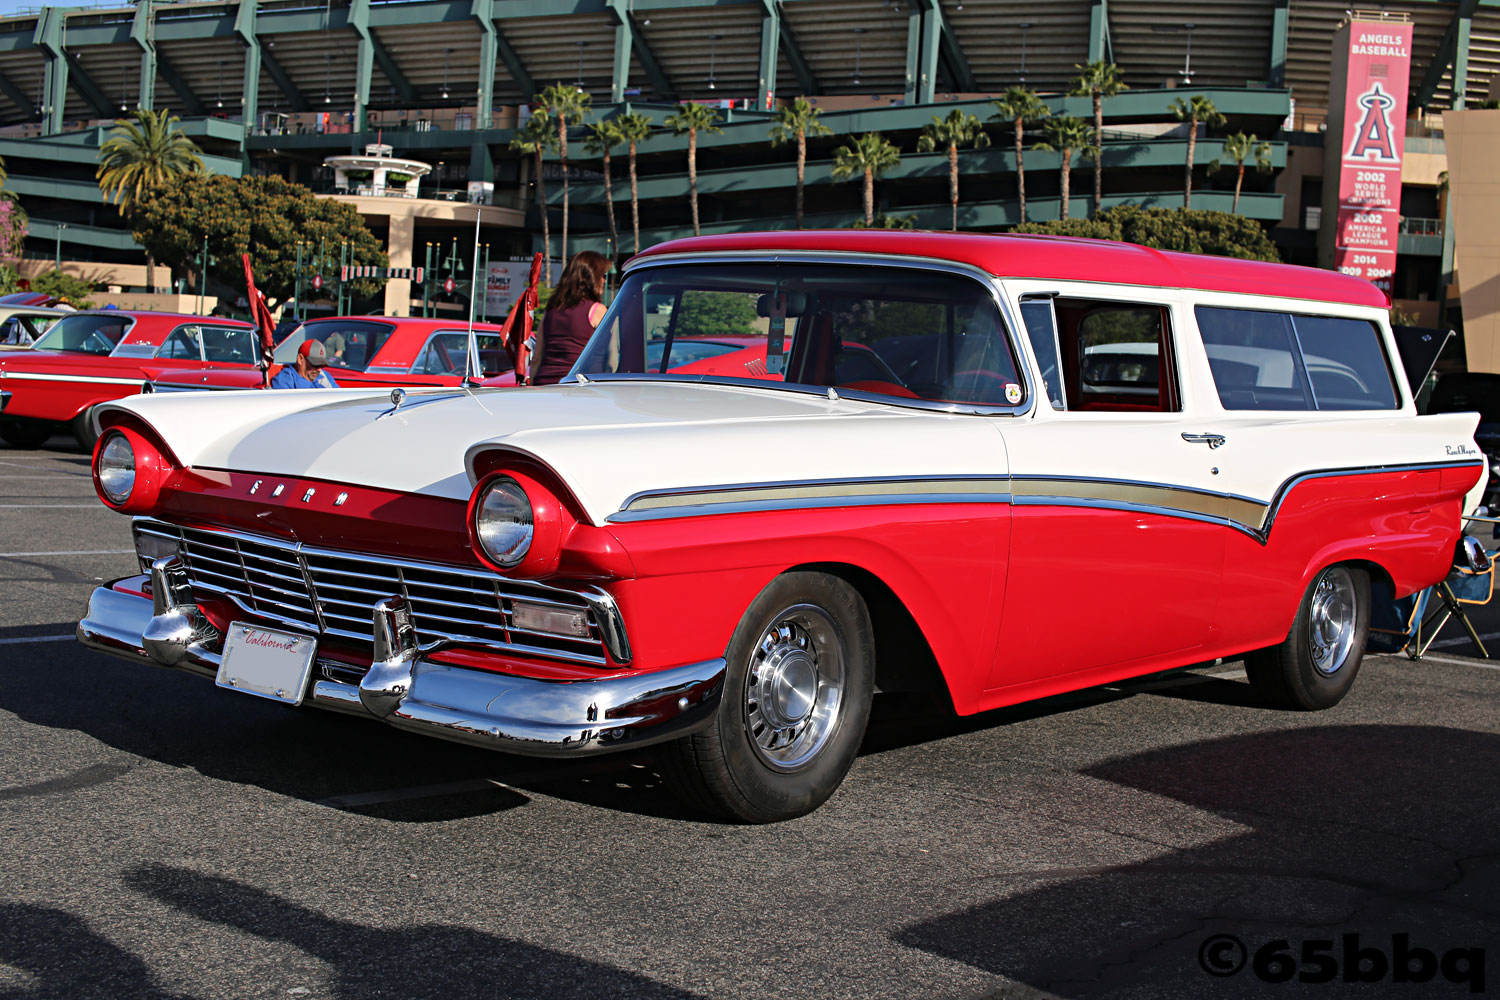 fabulous-fords-forever-april-2019-65bbq-rw56.jpg